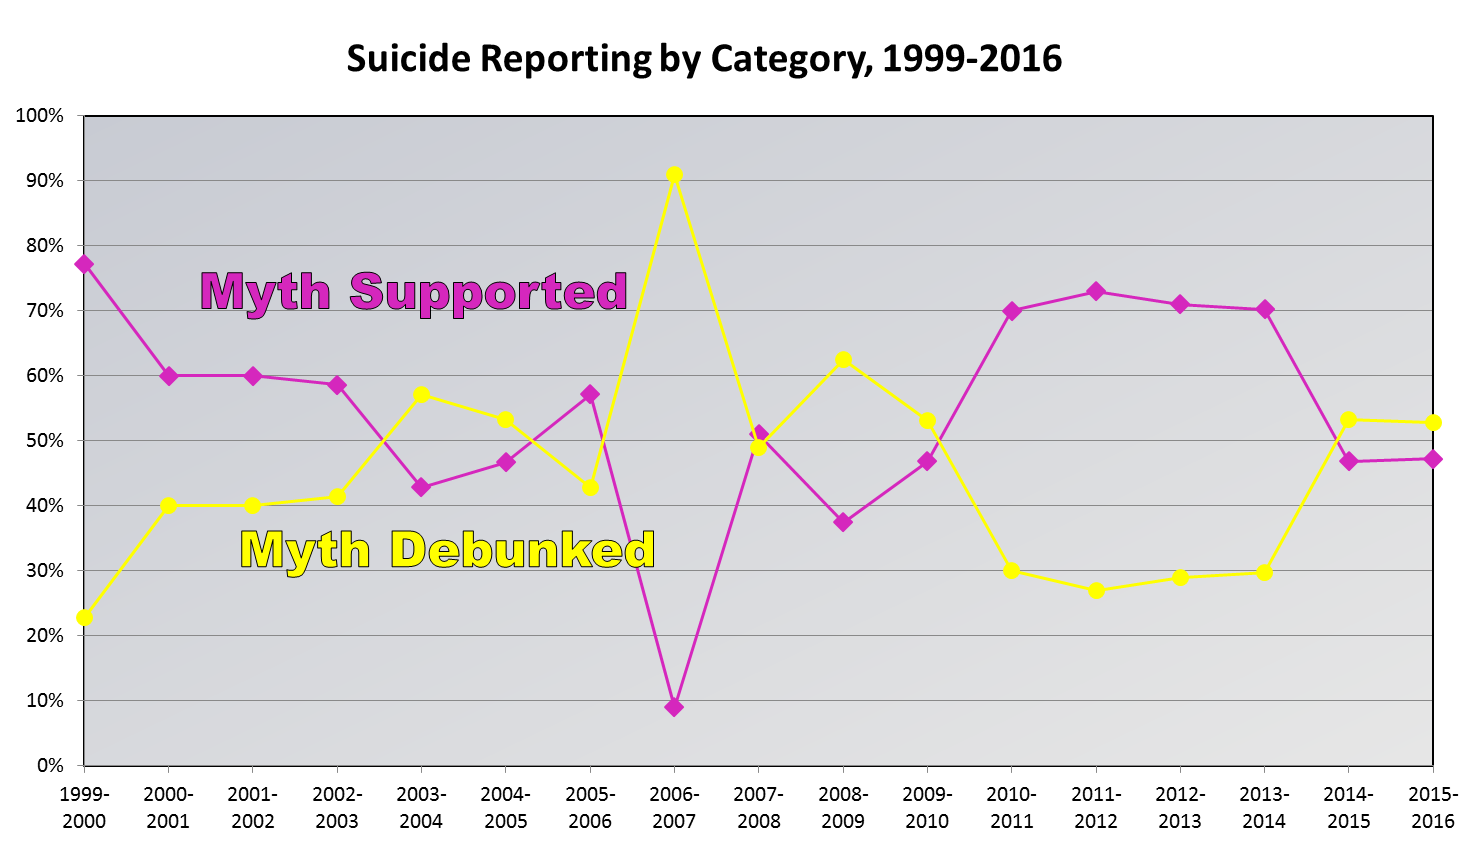 Suicide Reporting by Category, 1999-2016. Figure 1. Percentage of stories supporting the myth vs. those debunking it. Excludes stories citing both in a coincidental manner (no causal association).